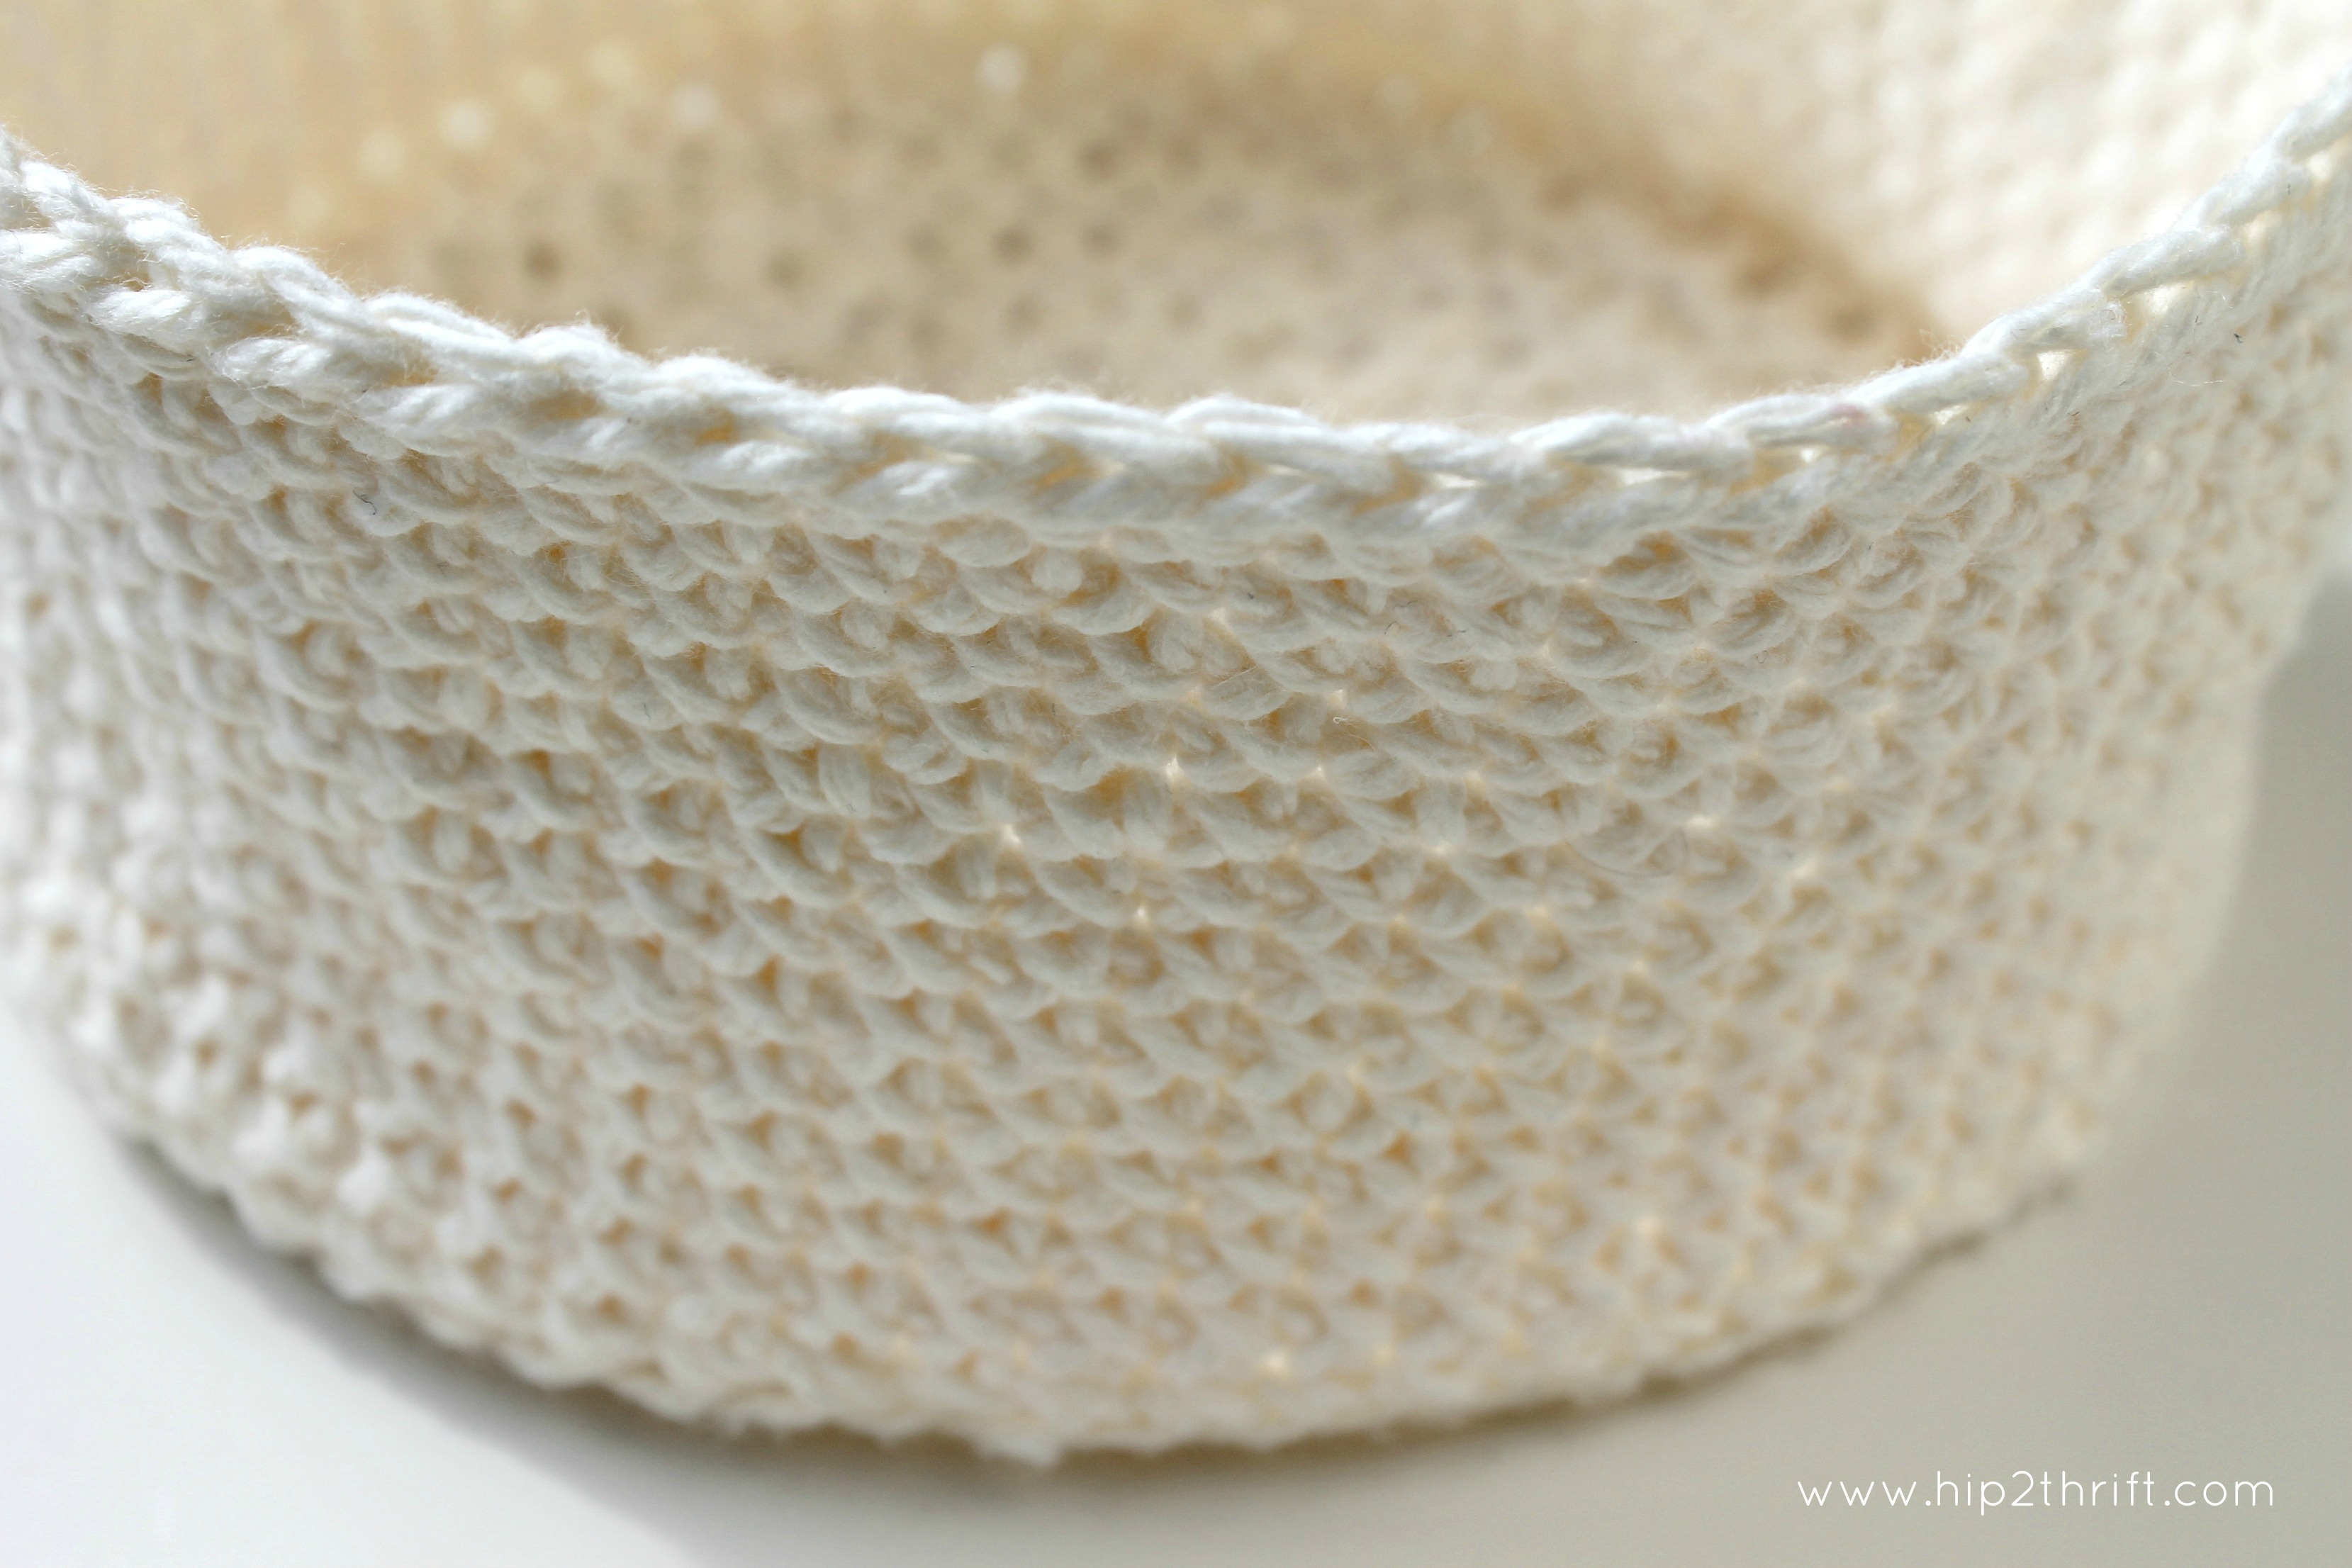 Crochet Basket : crocheted basket tutorial